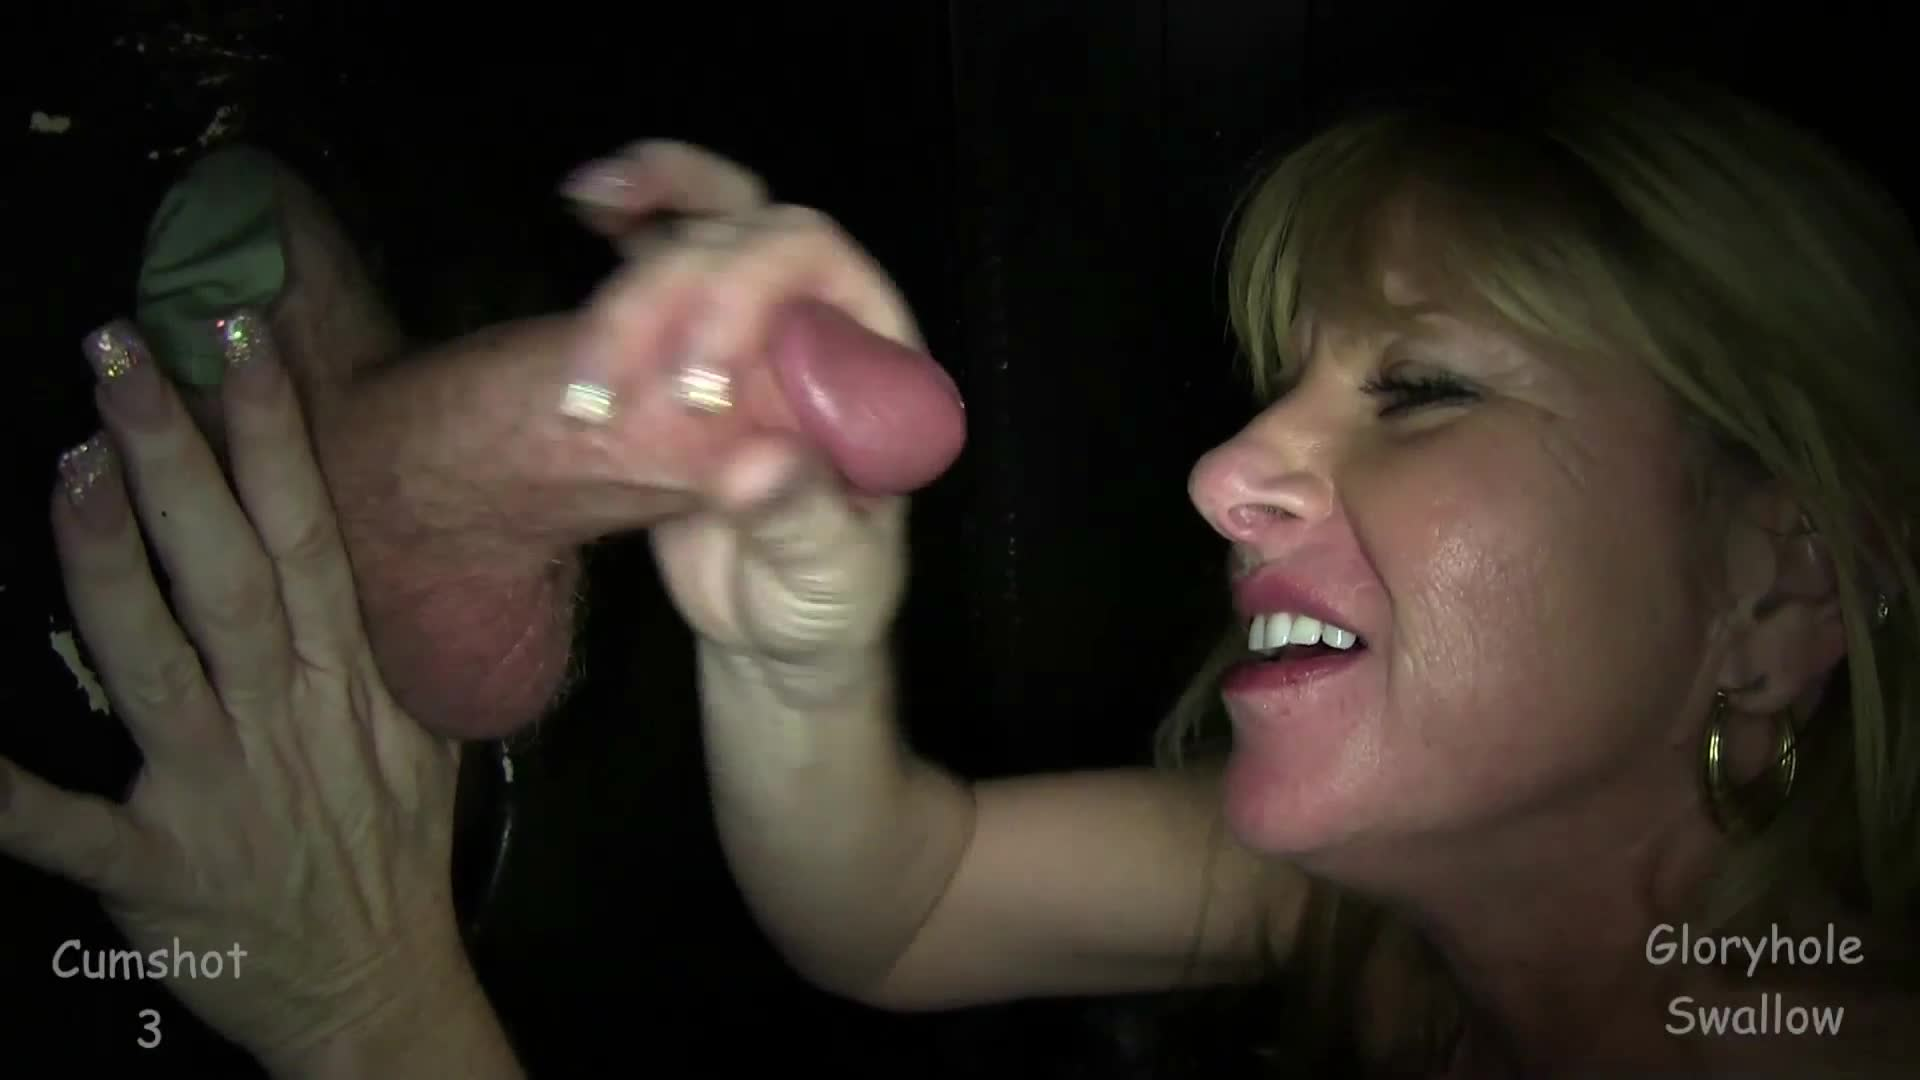 gloryhole swallow bridget second visit milf cum swallow cum 5